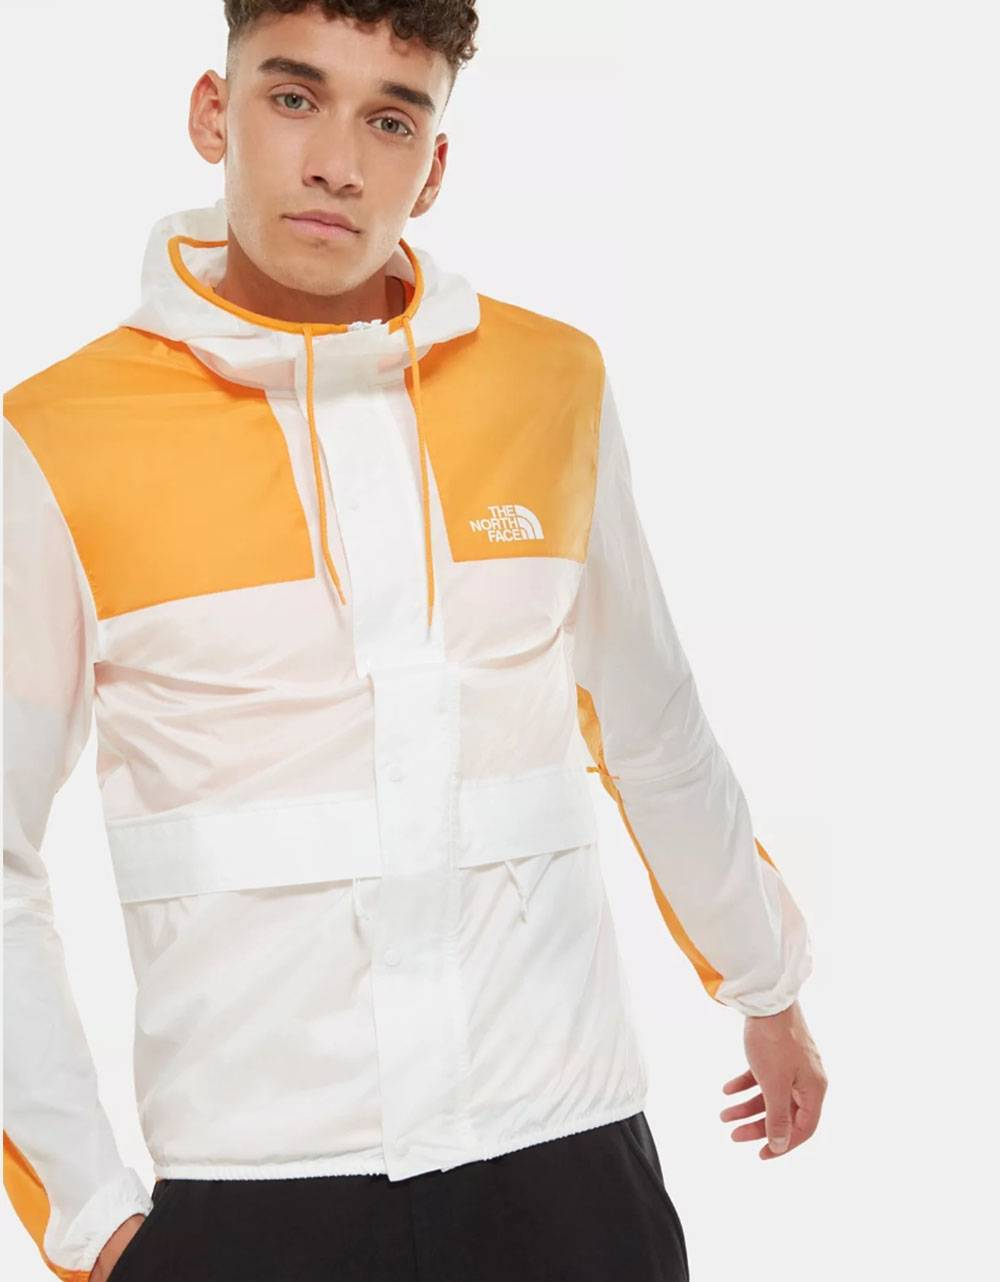 The North Face 1985 Mountain jacket - Tnf white / flame orange THE NORTH FACE Light jacket 95,08 €